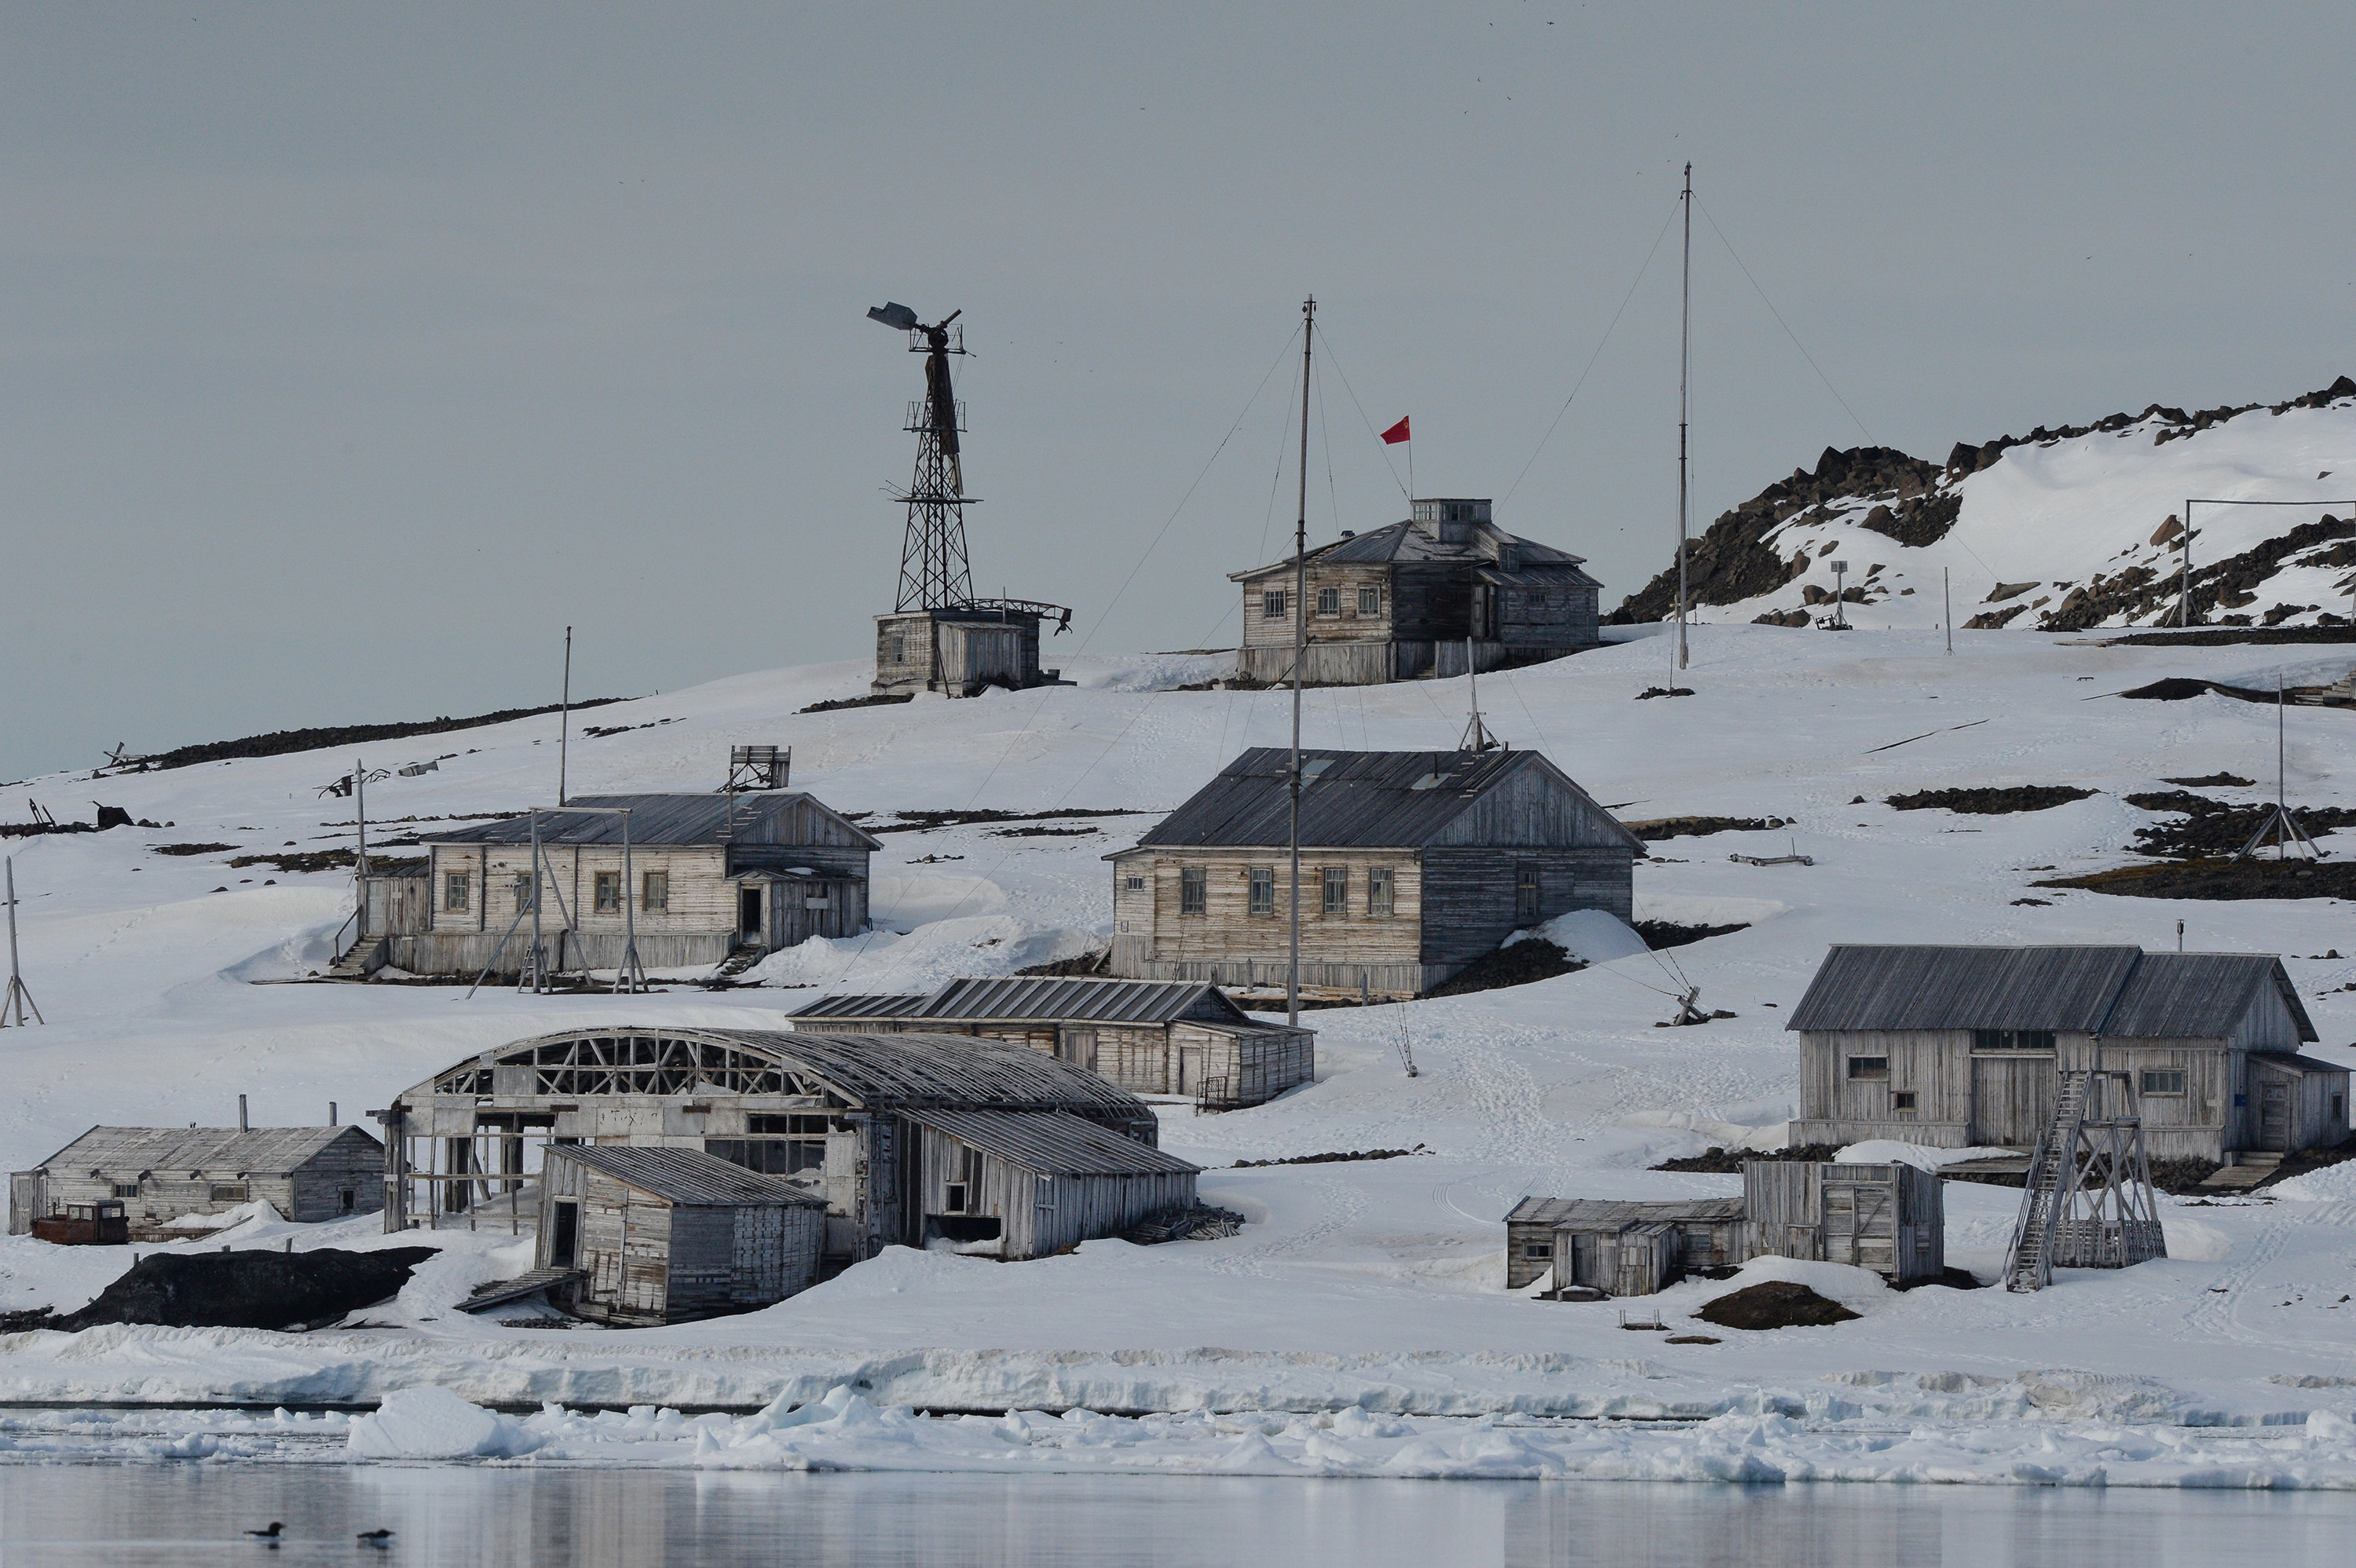 View of the polar station from the water, Franz Josef Land, Russian Arctic National Park